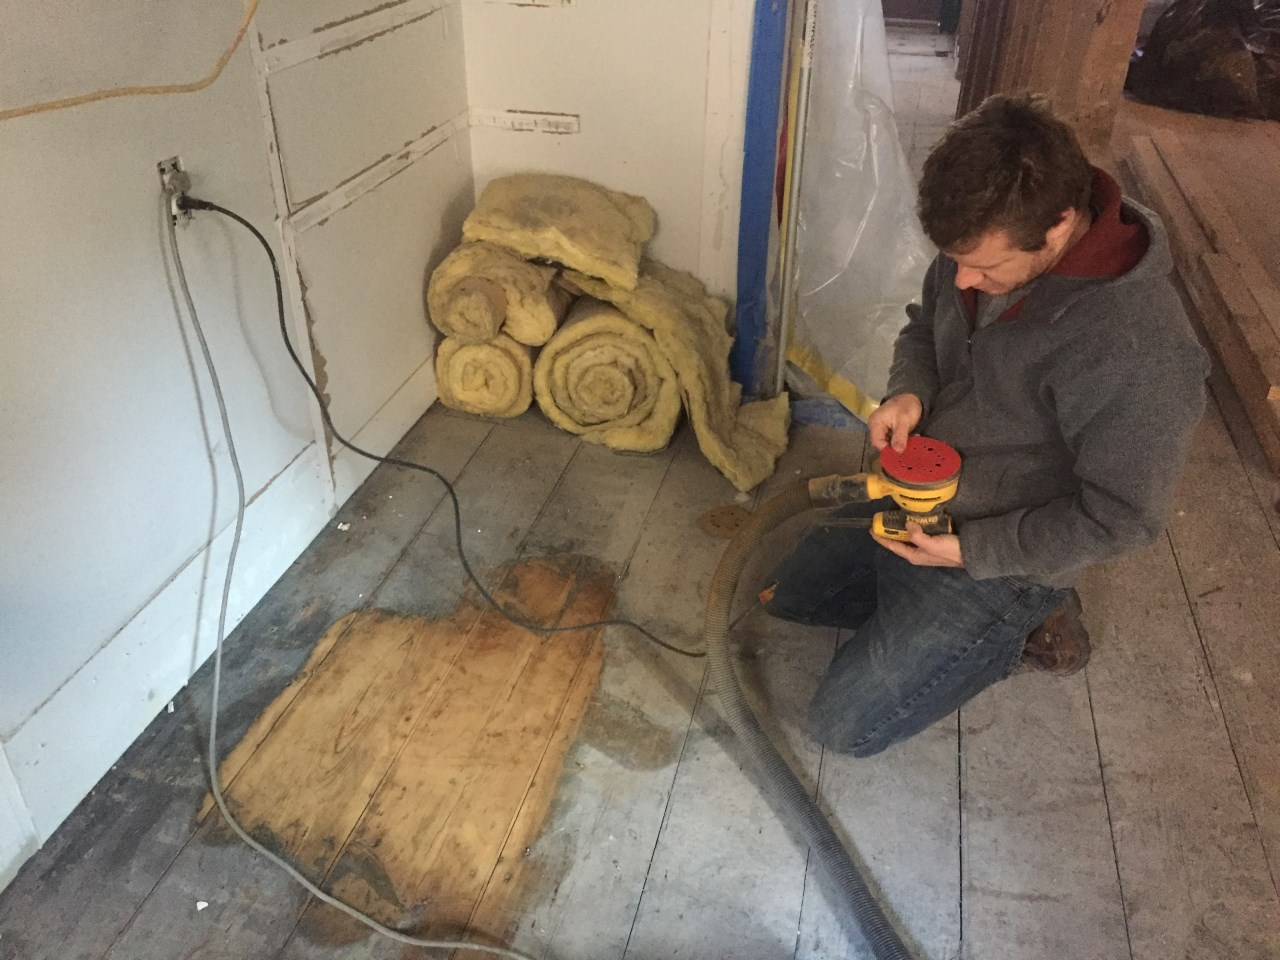 Historic District Brownstone Remodel Project In Process History Revitalized During Remodel 01